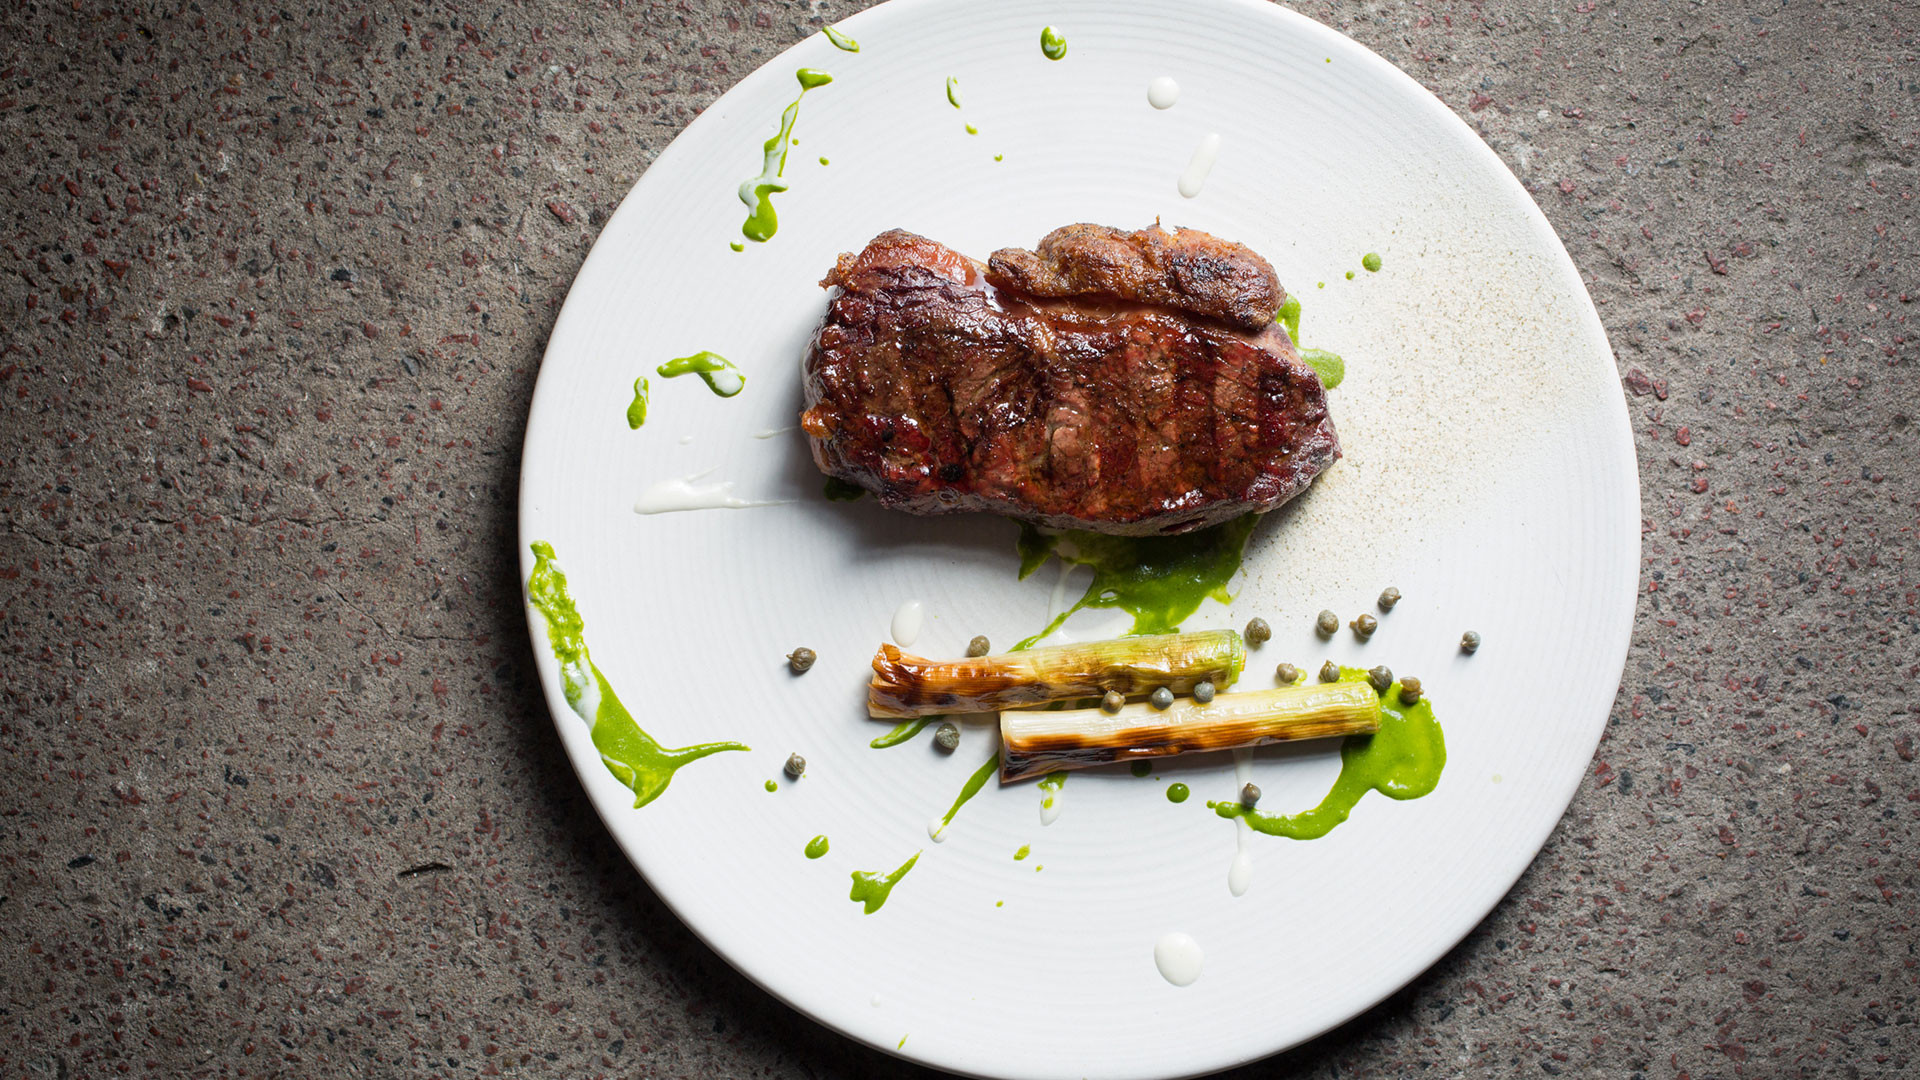 A steak from Sucre restaurant, Buenos Aires